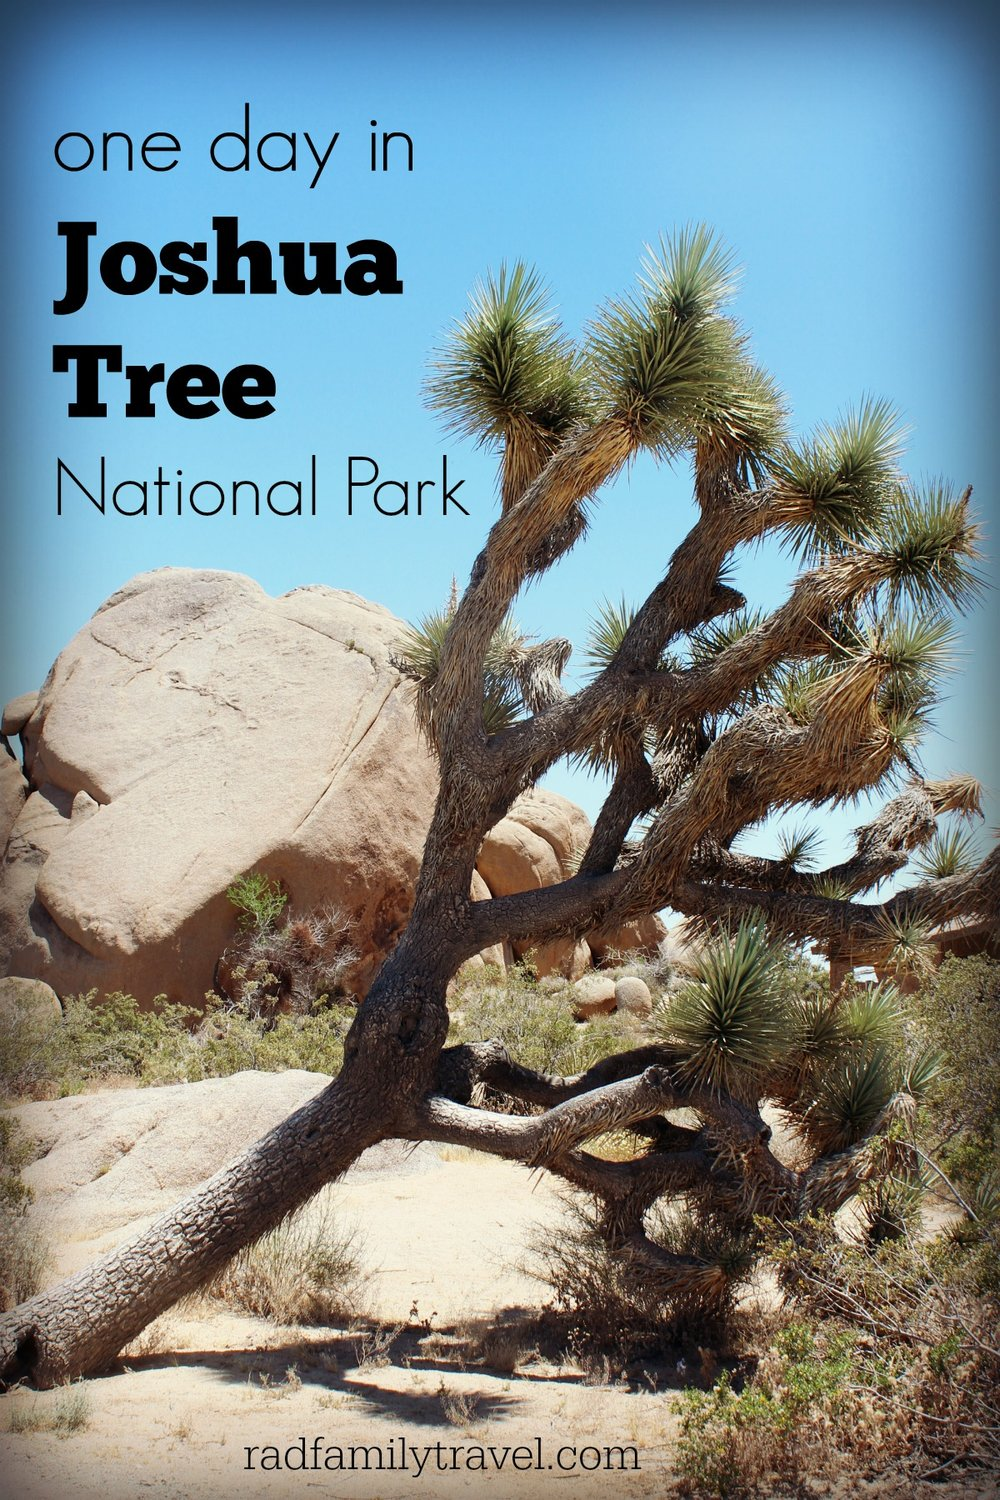 Joshua Tree National Park in one day